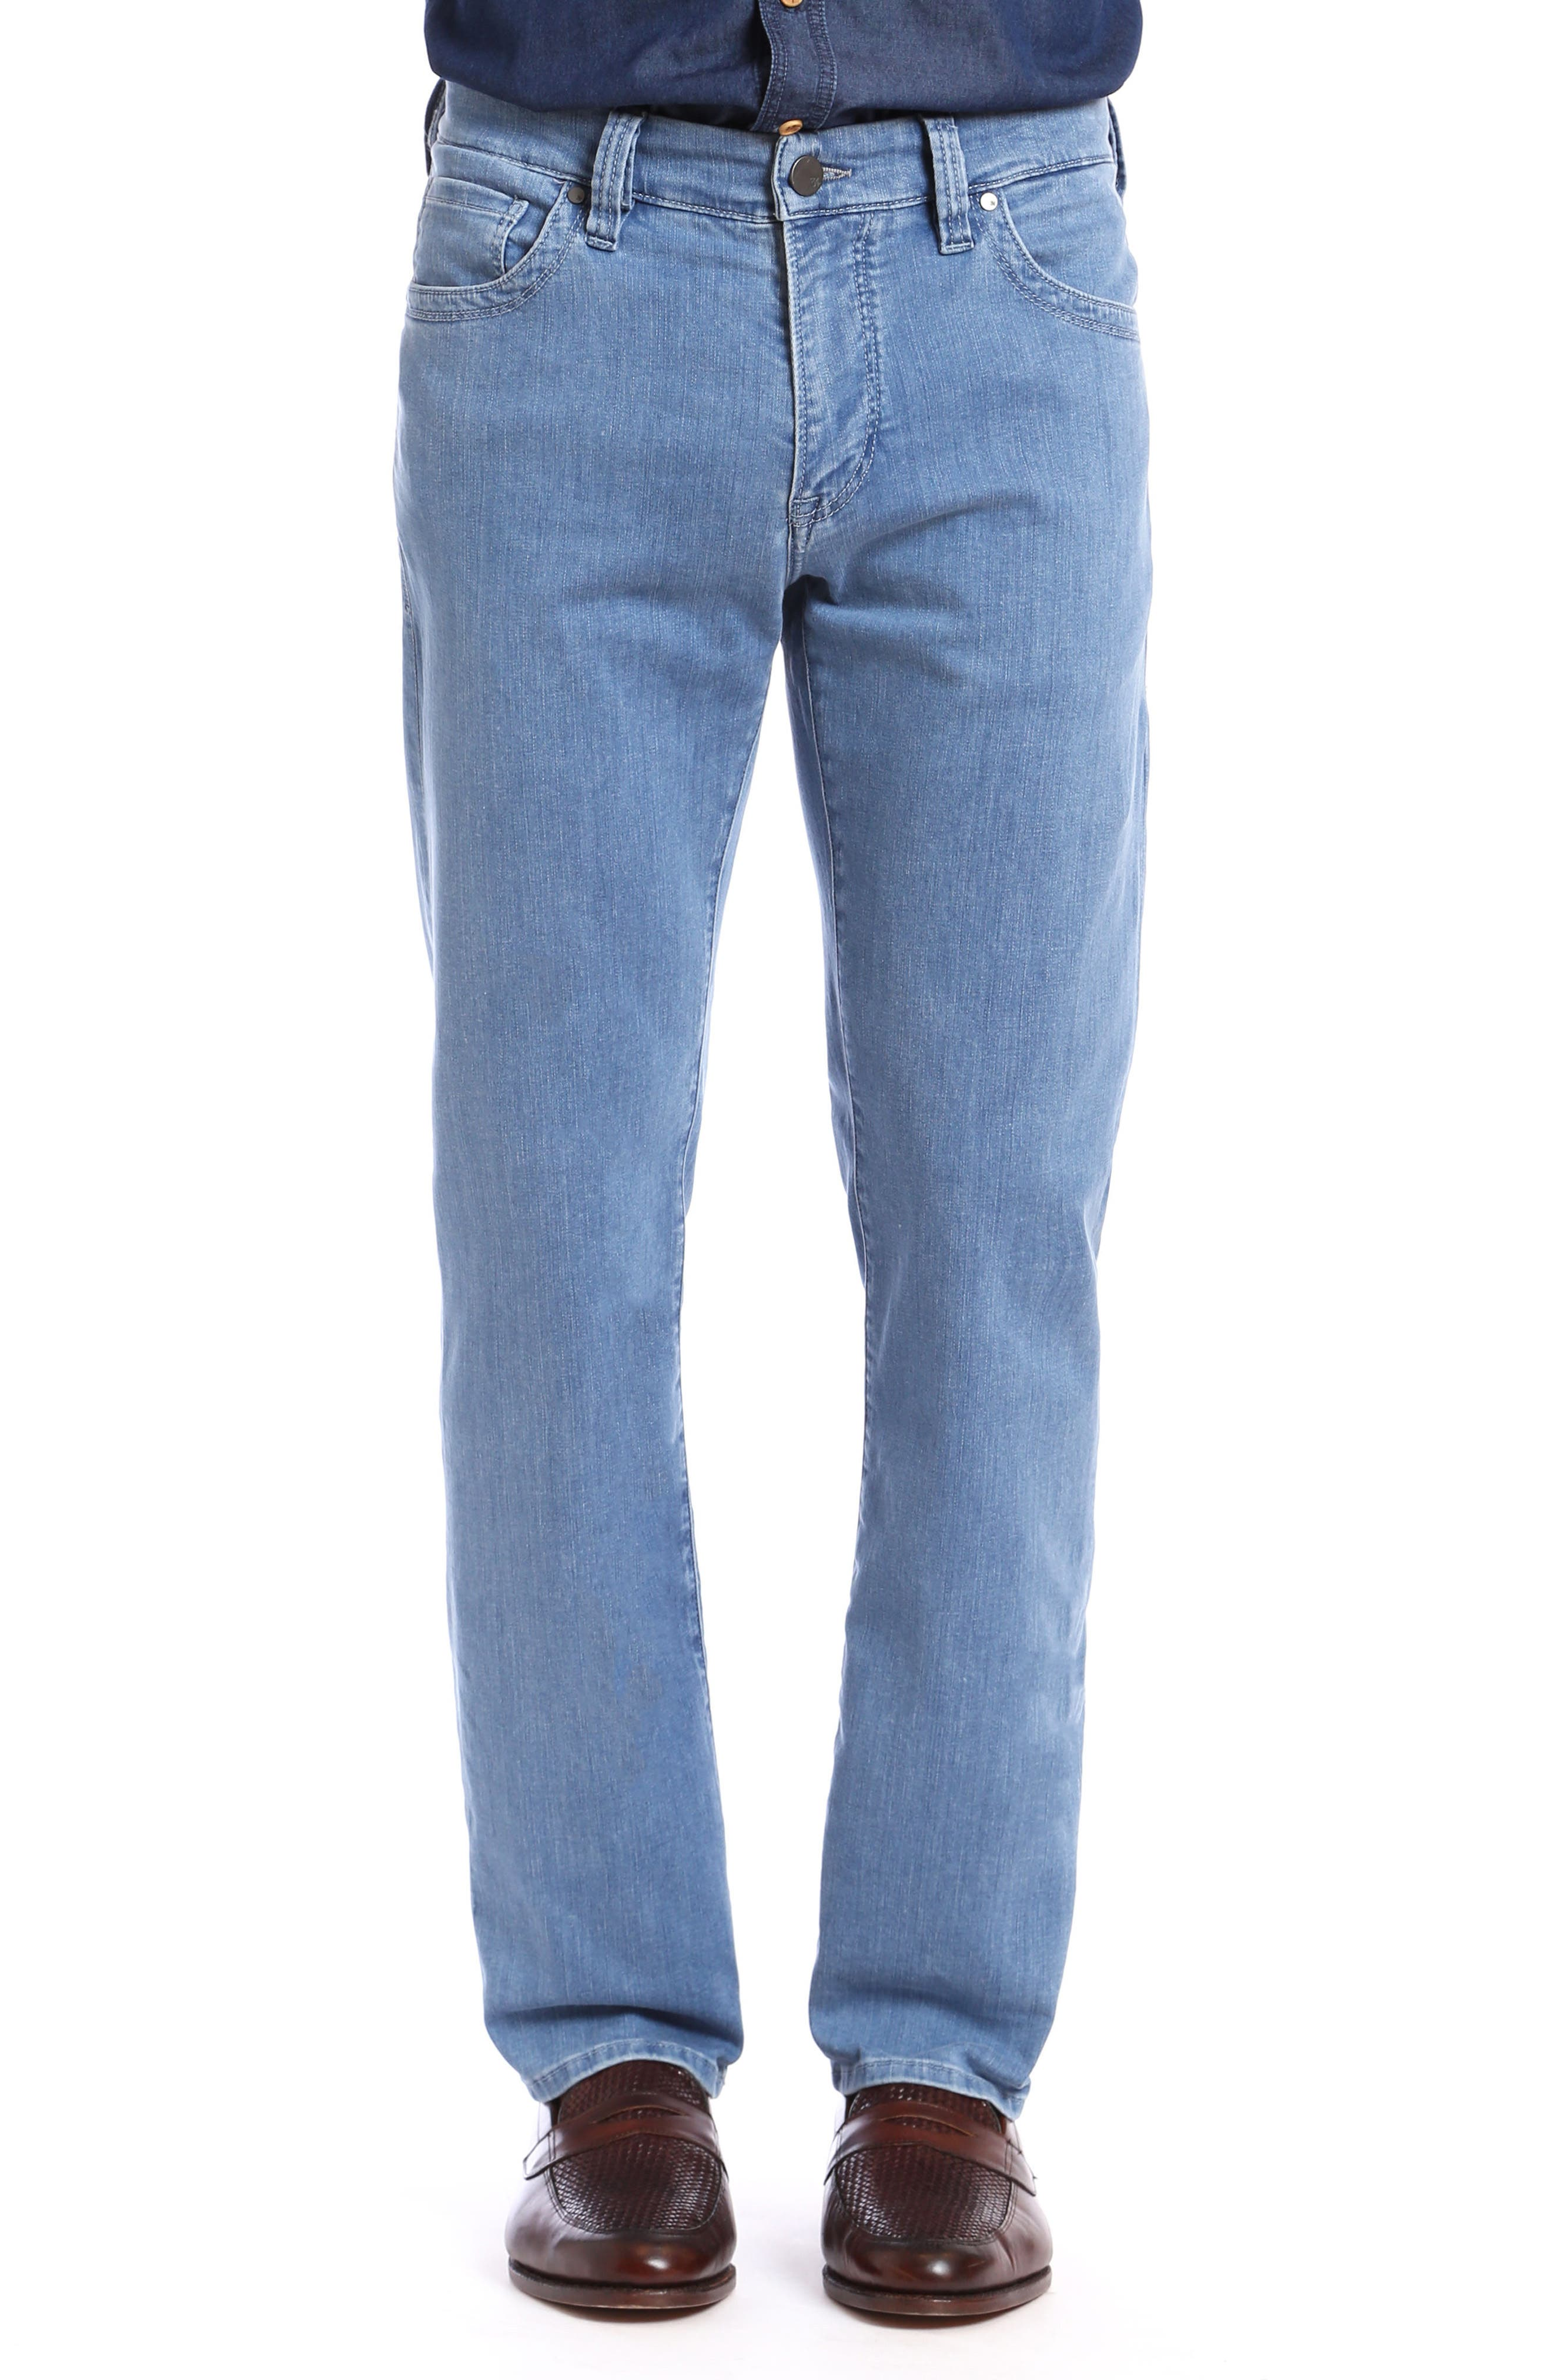 Charisma Relaxed Fit jeans,                         Main,                         color, 420